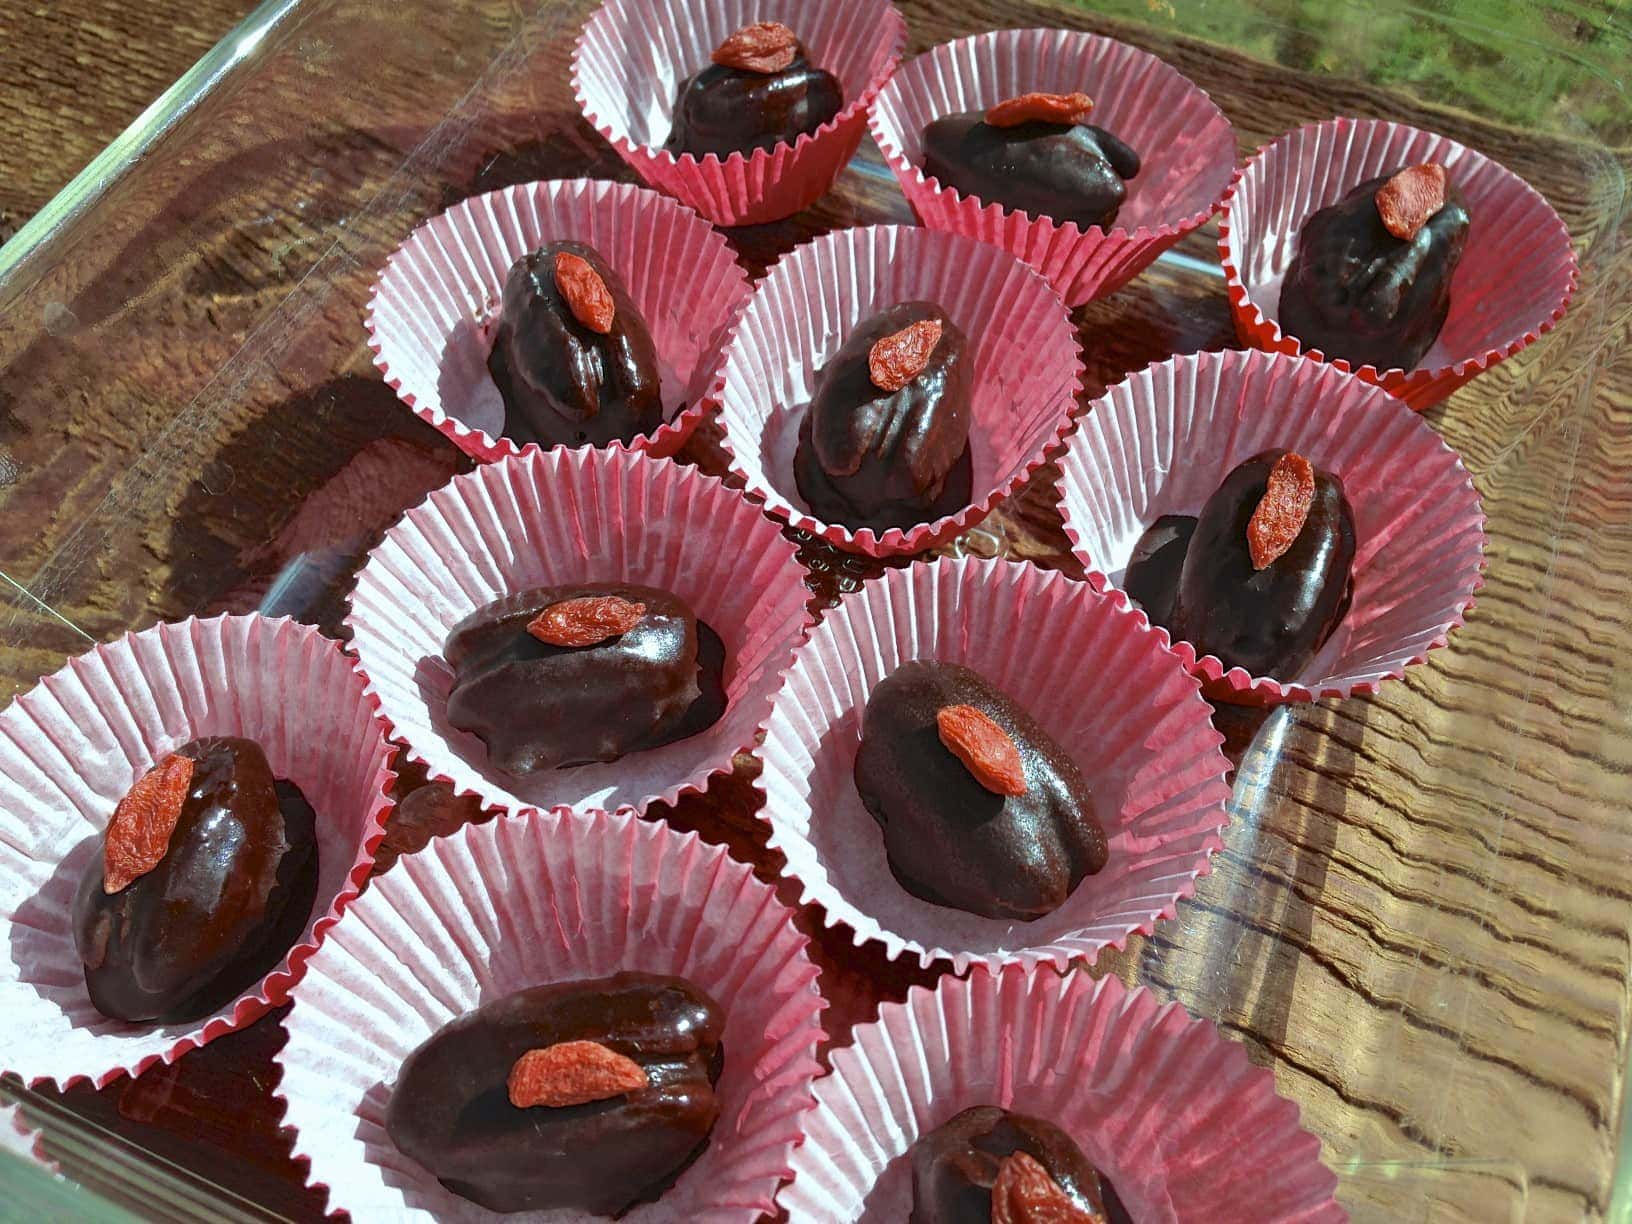 several rows of chocolate caramel pecan candies in red paper cups